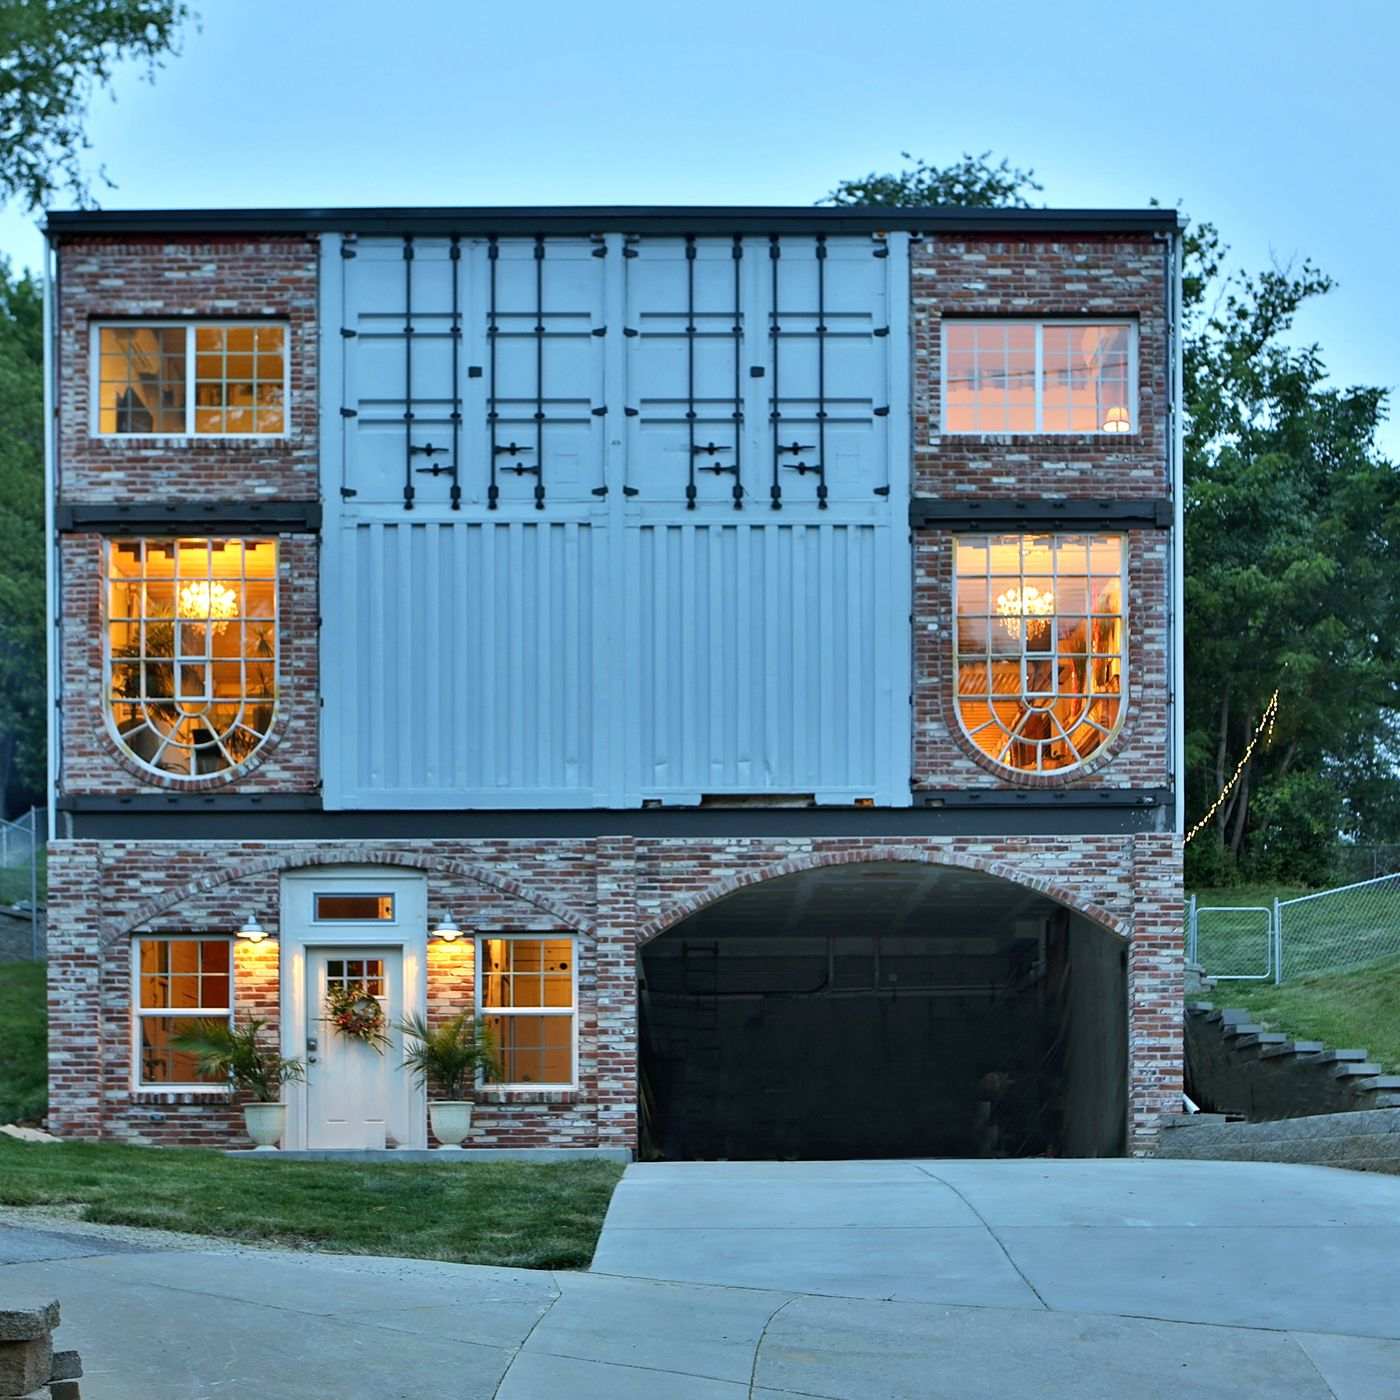 Shipping container houses: the 5 best of 2017 - Curbed